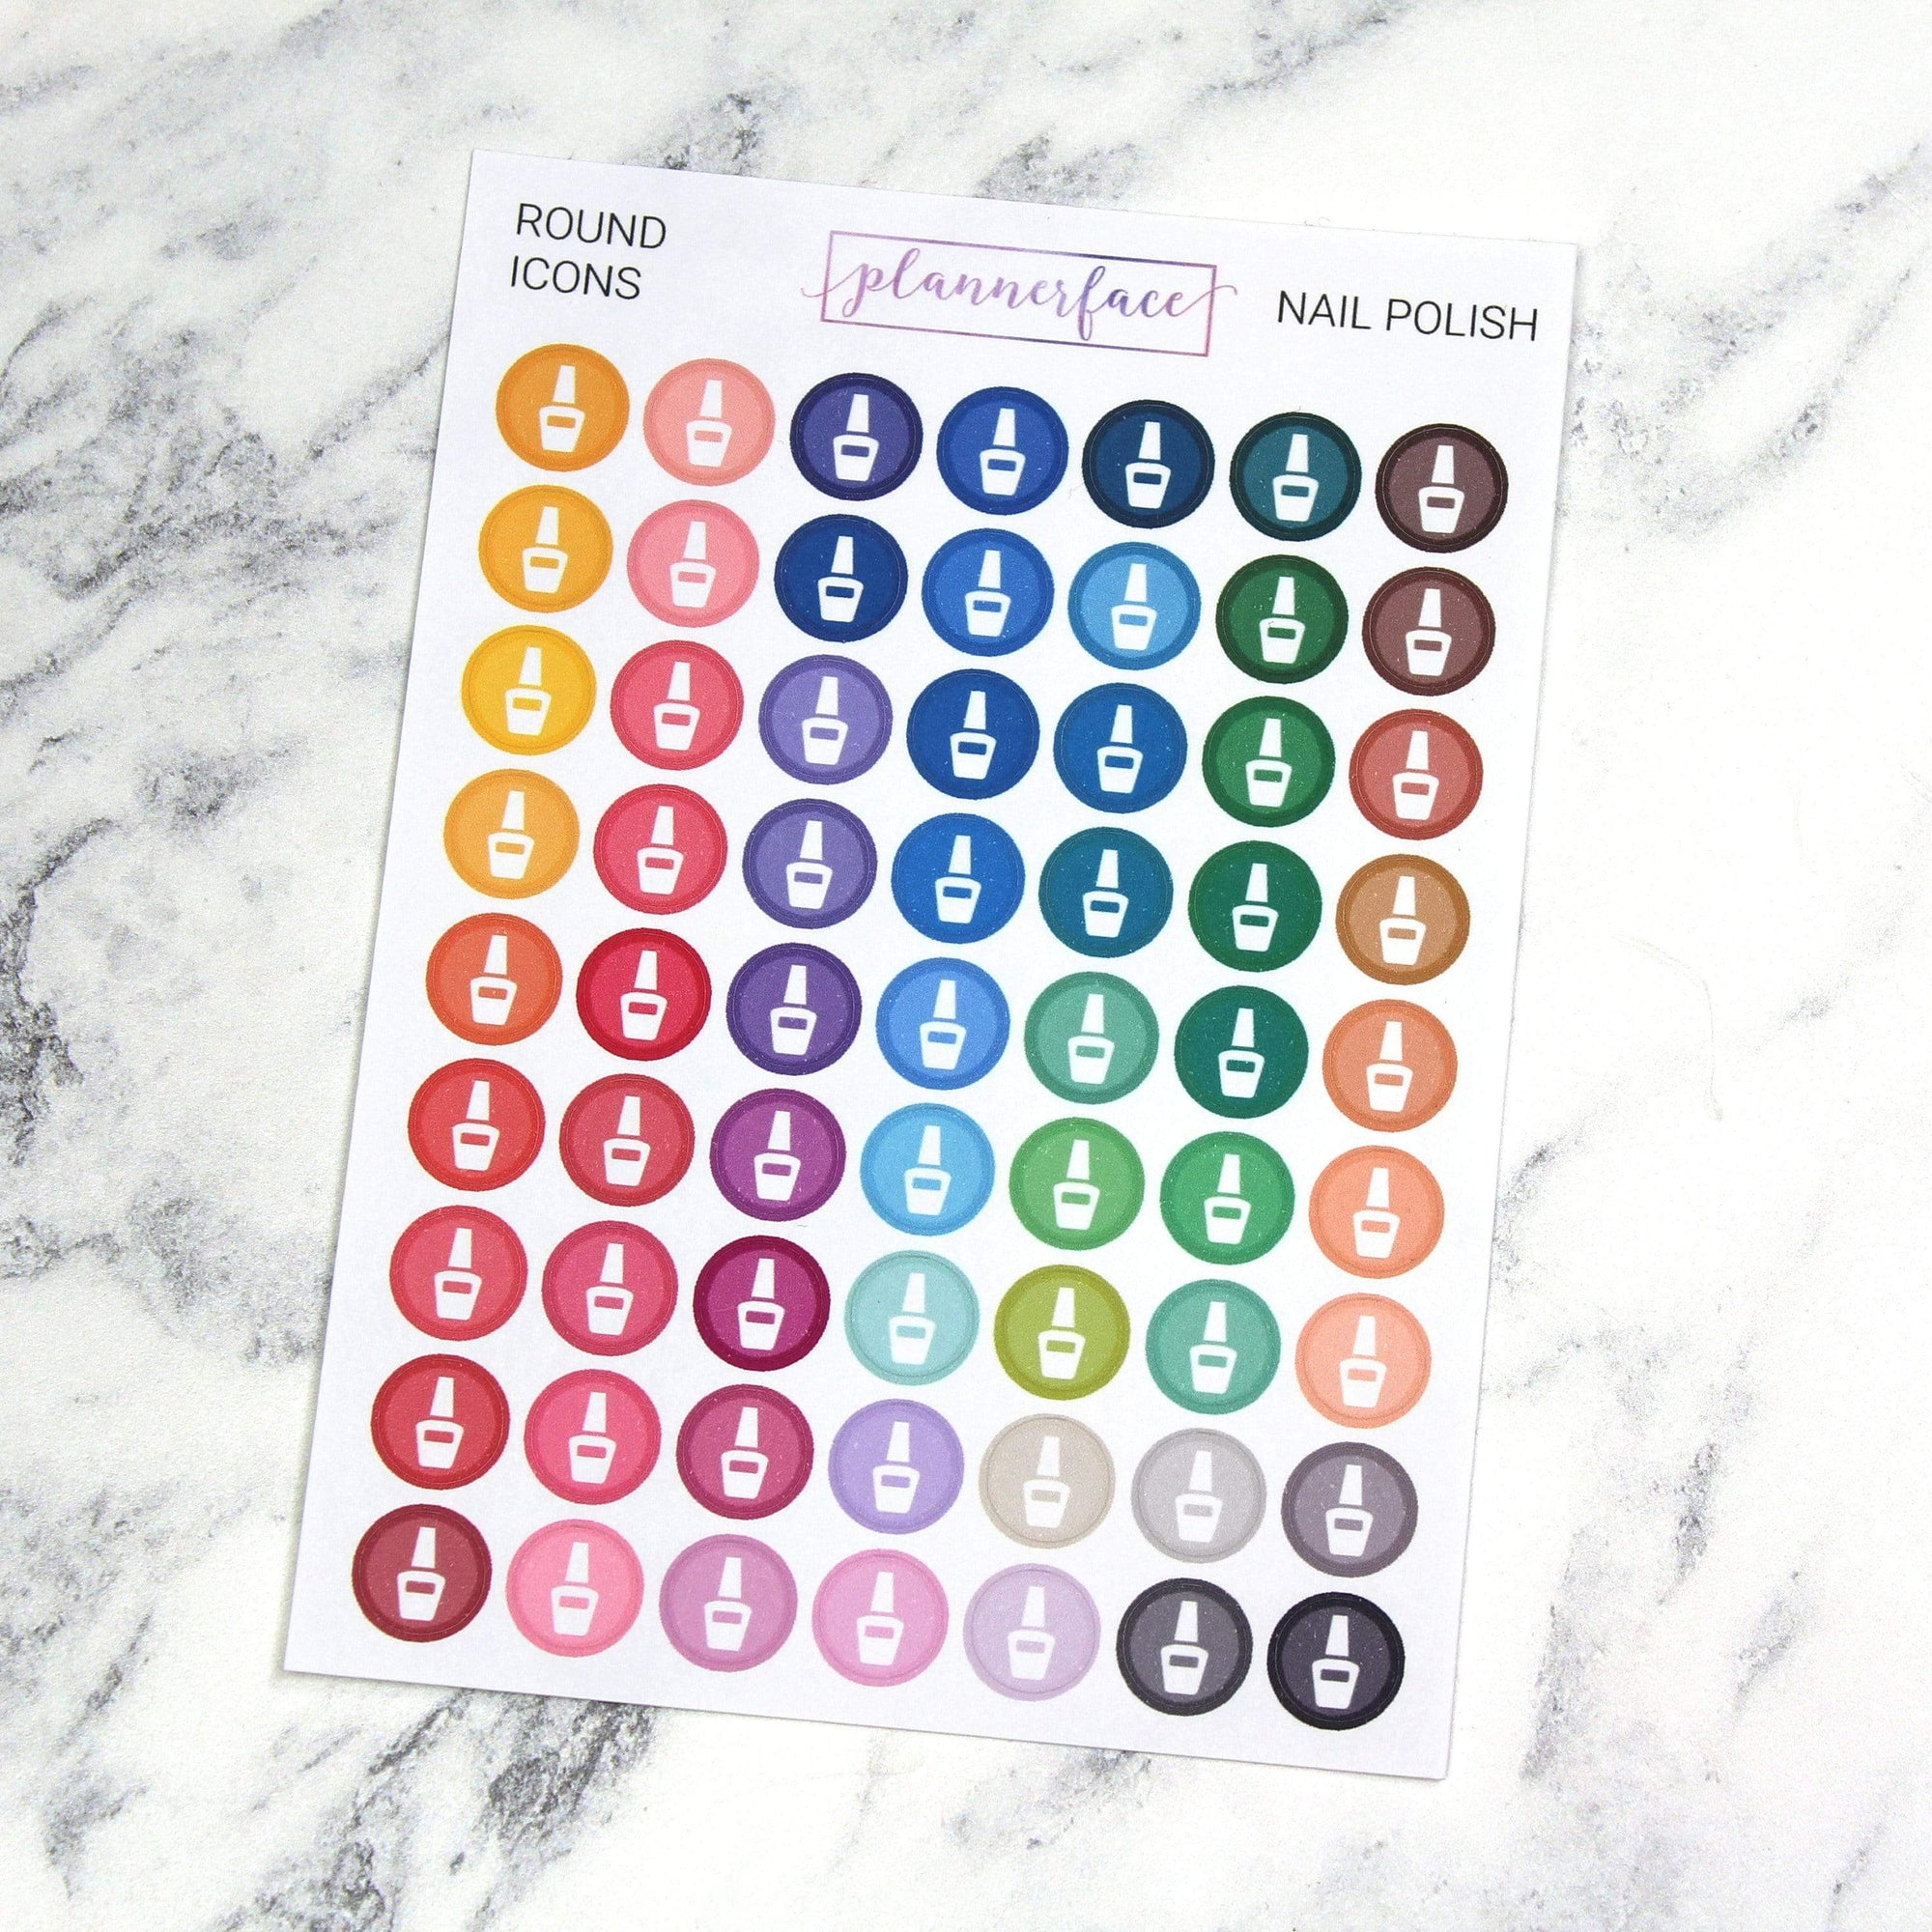 Plannerface Nail Polish | Round Multicolour Icons Planner Stickers